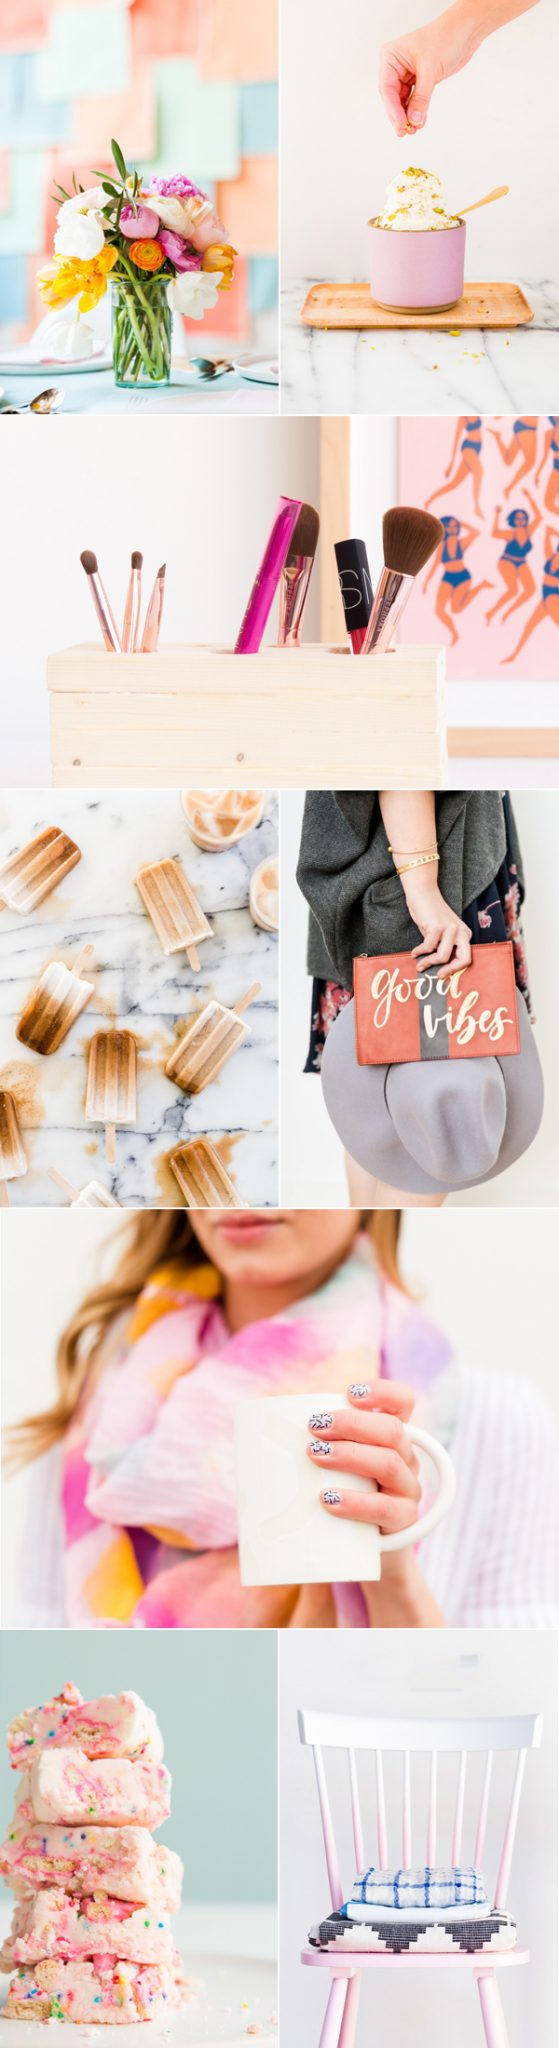 Favorite Bloggers | Paper & Stitch featured by @cydconverse